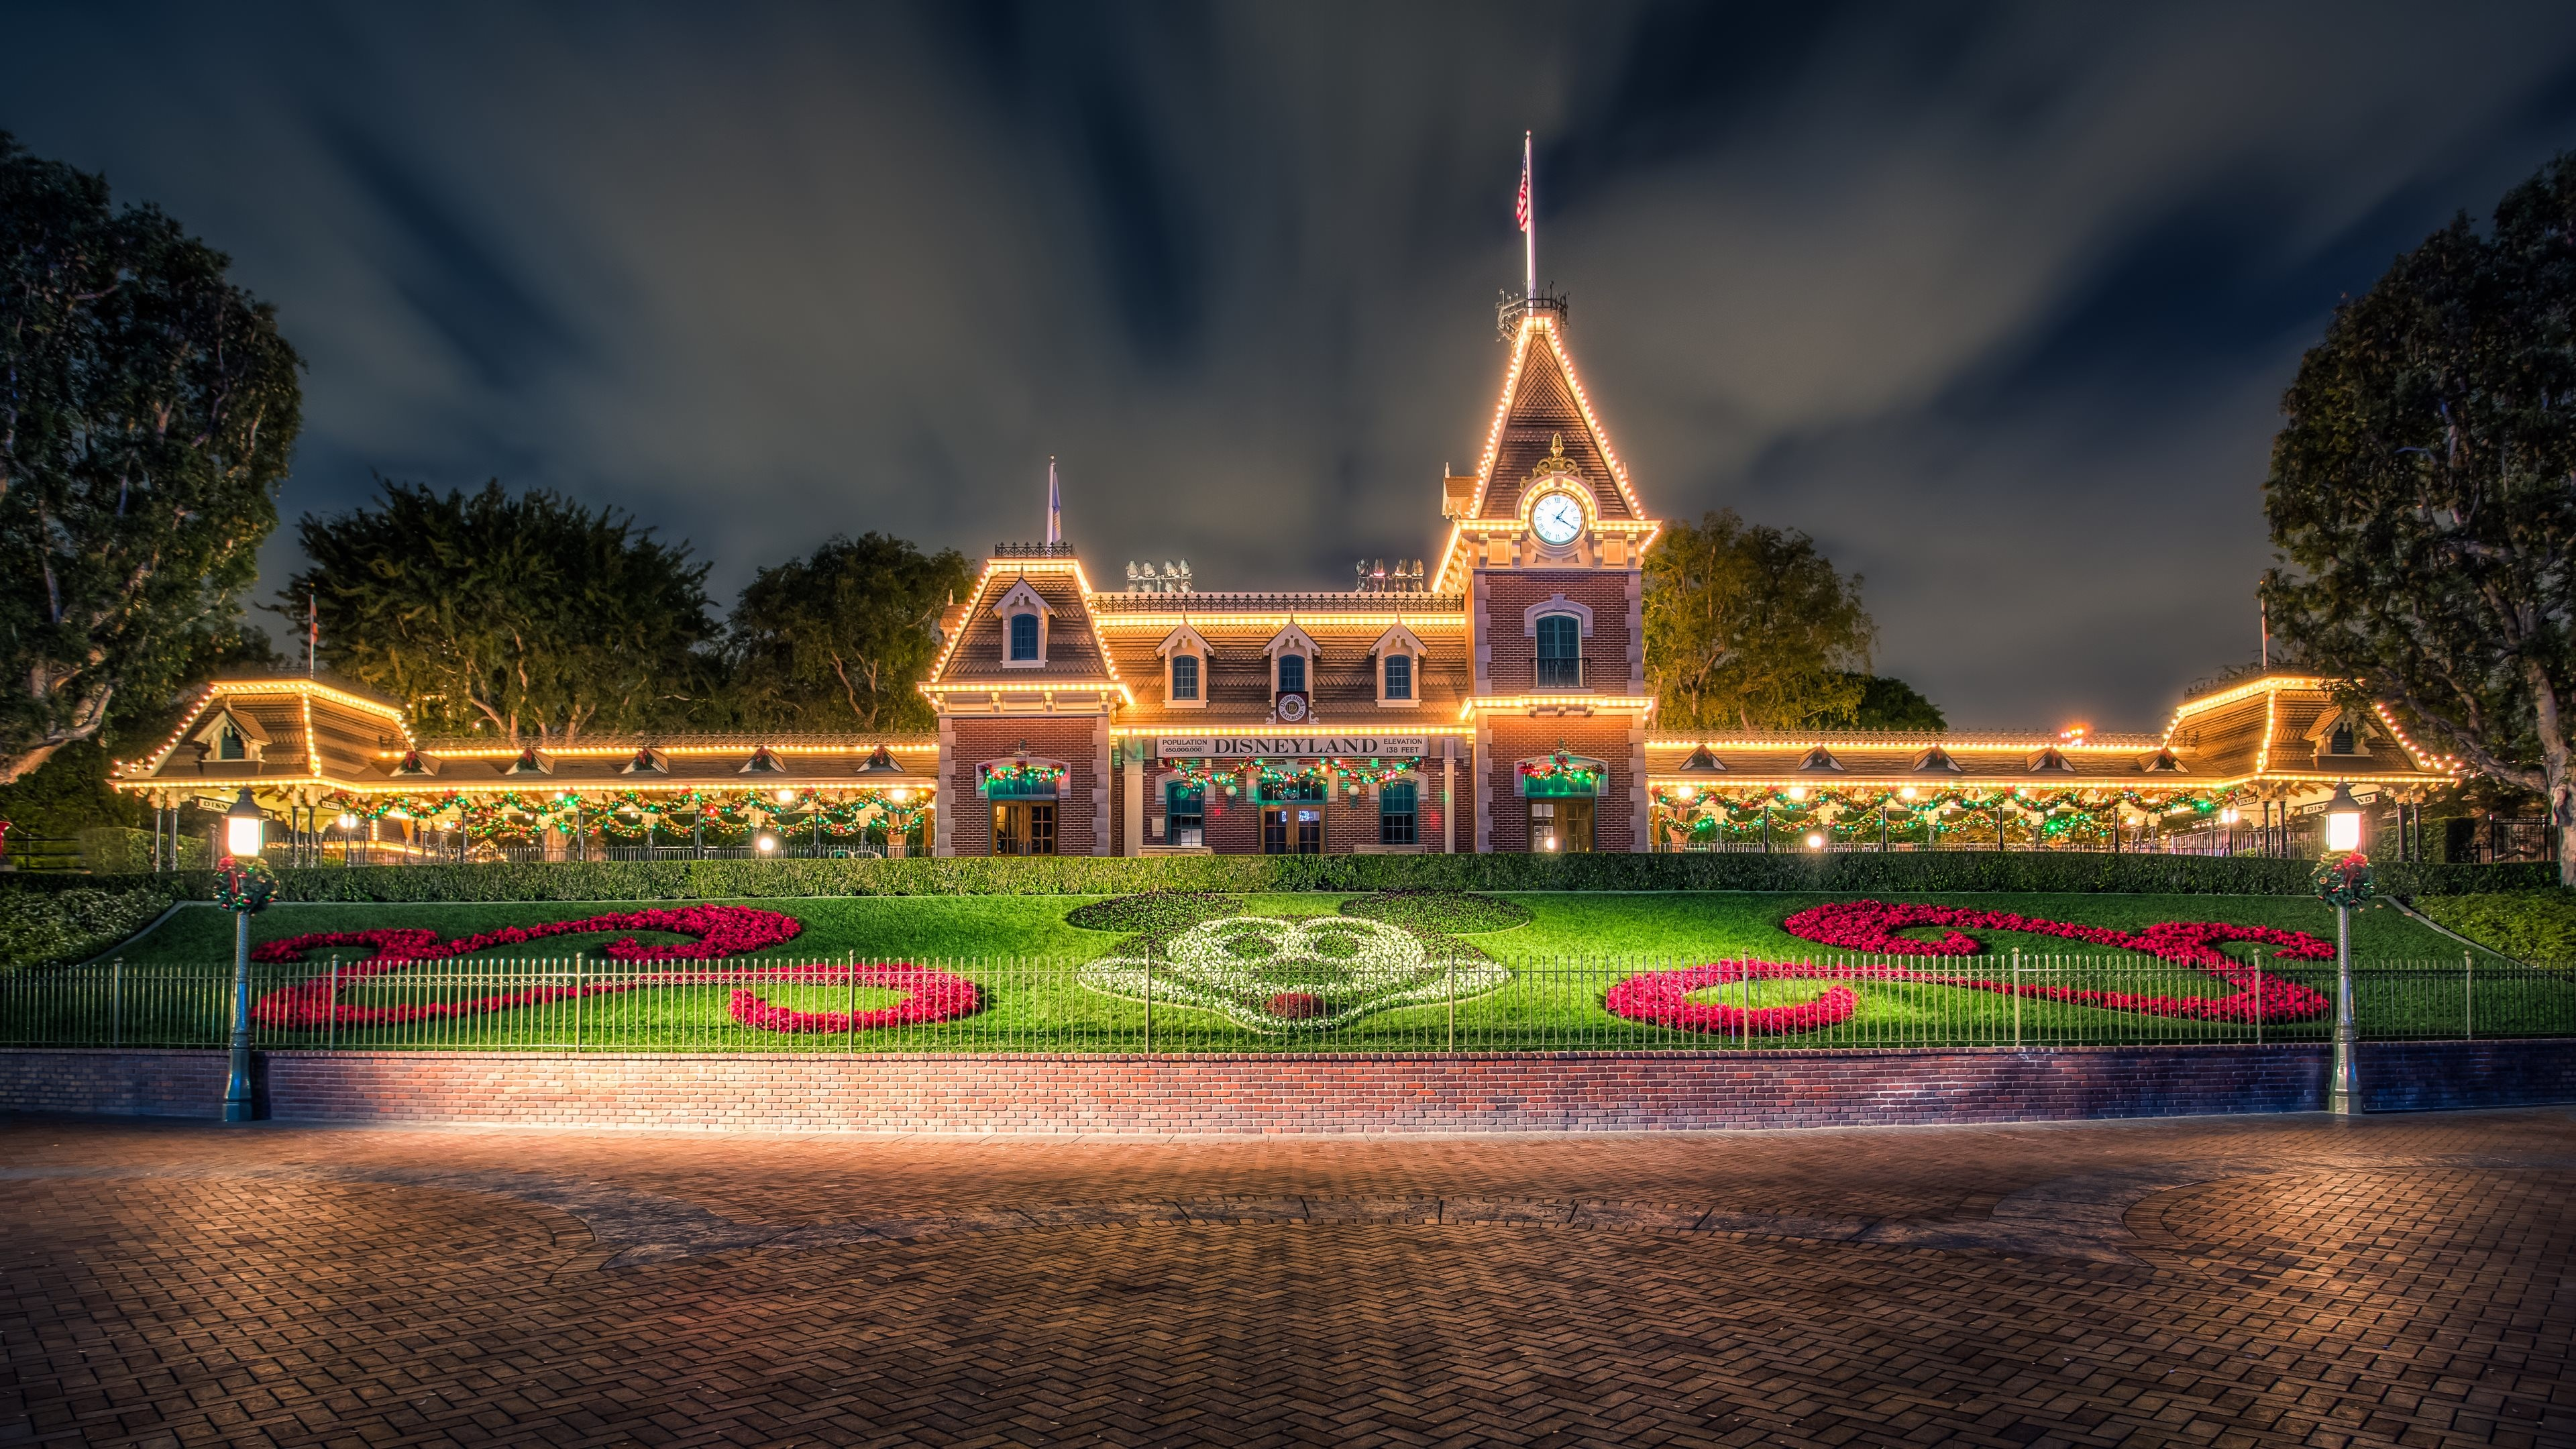 3840x2160 Disneyland 4k Ultra HD Wallpaper | Background Image |  | ID:473247  - Wallpaper Abyss